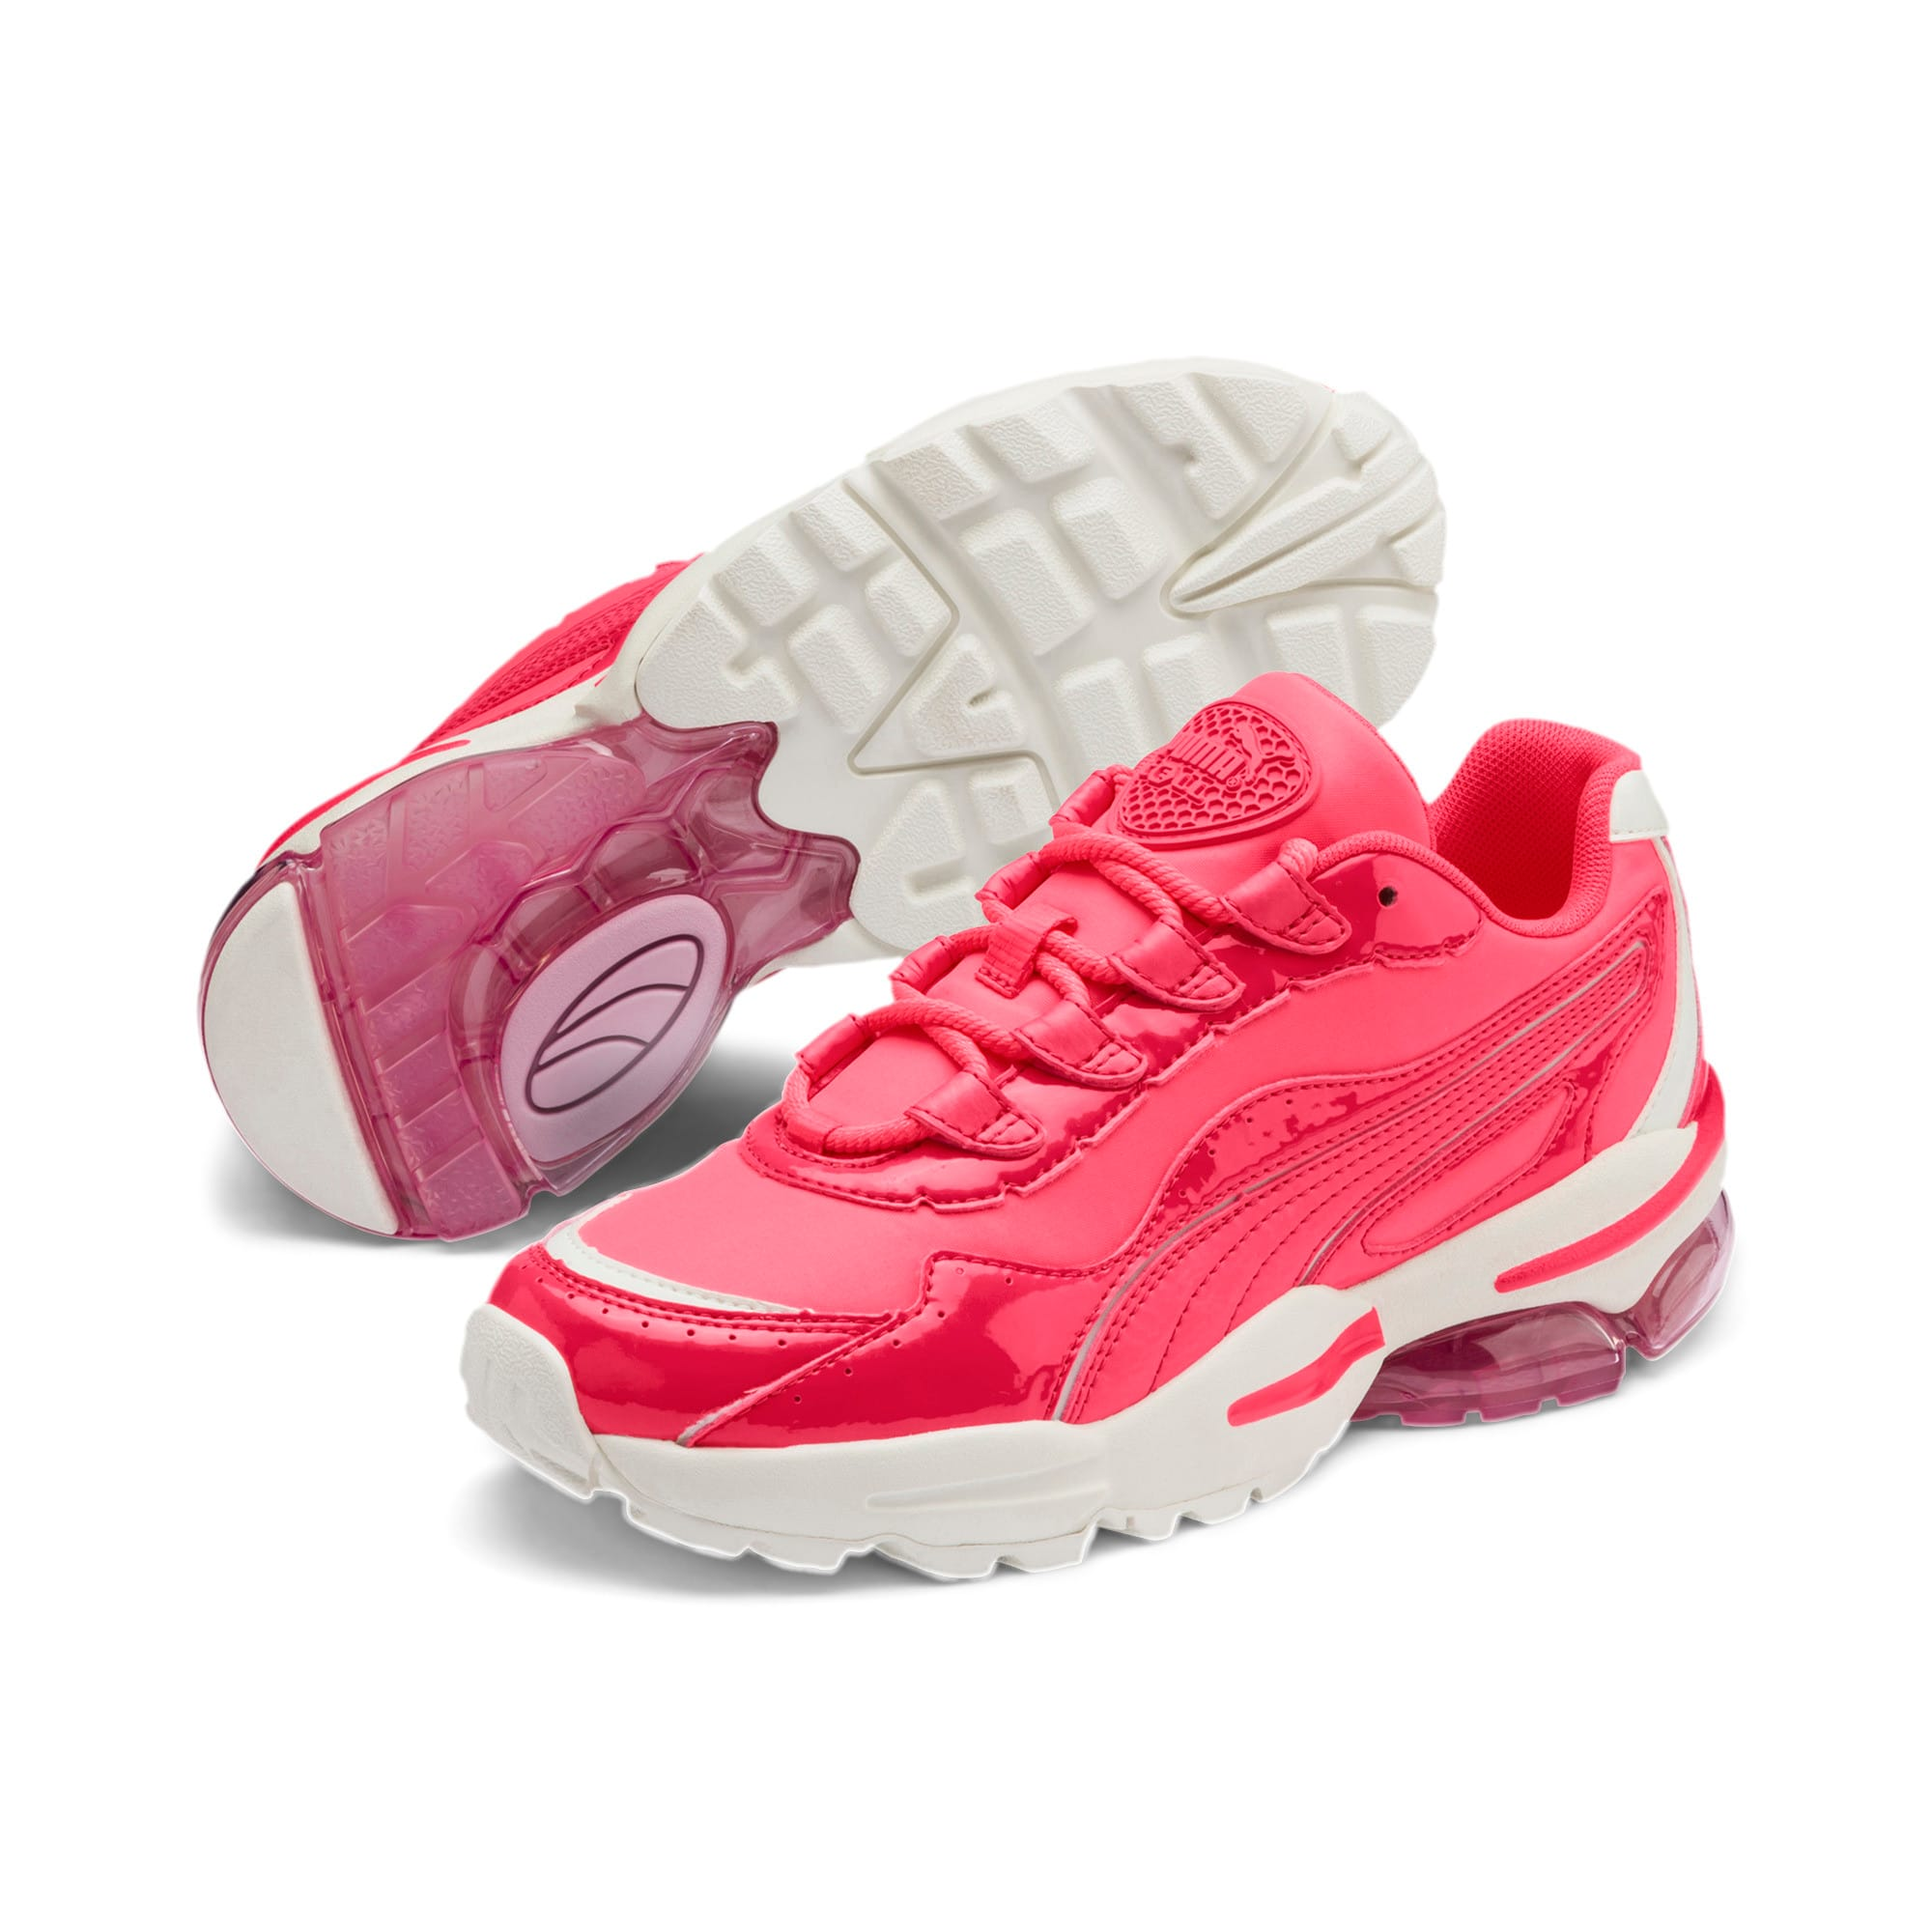 Thumbnail 3 of CELL Stellar Neon Women's Trainers, Pink Alert-Heather, medium